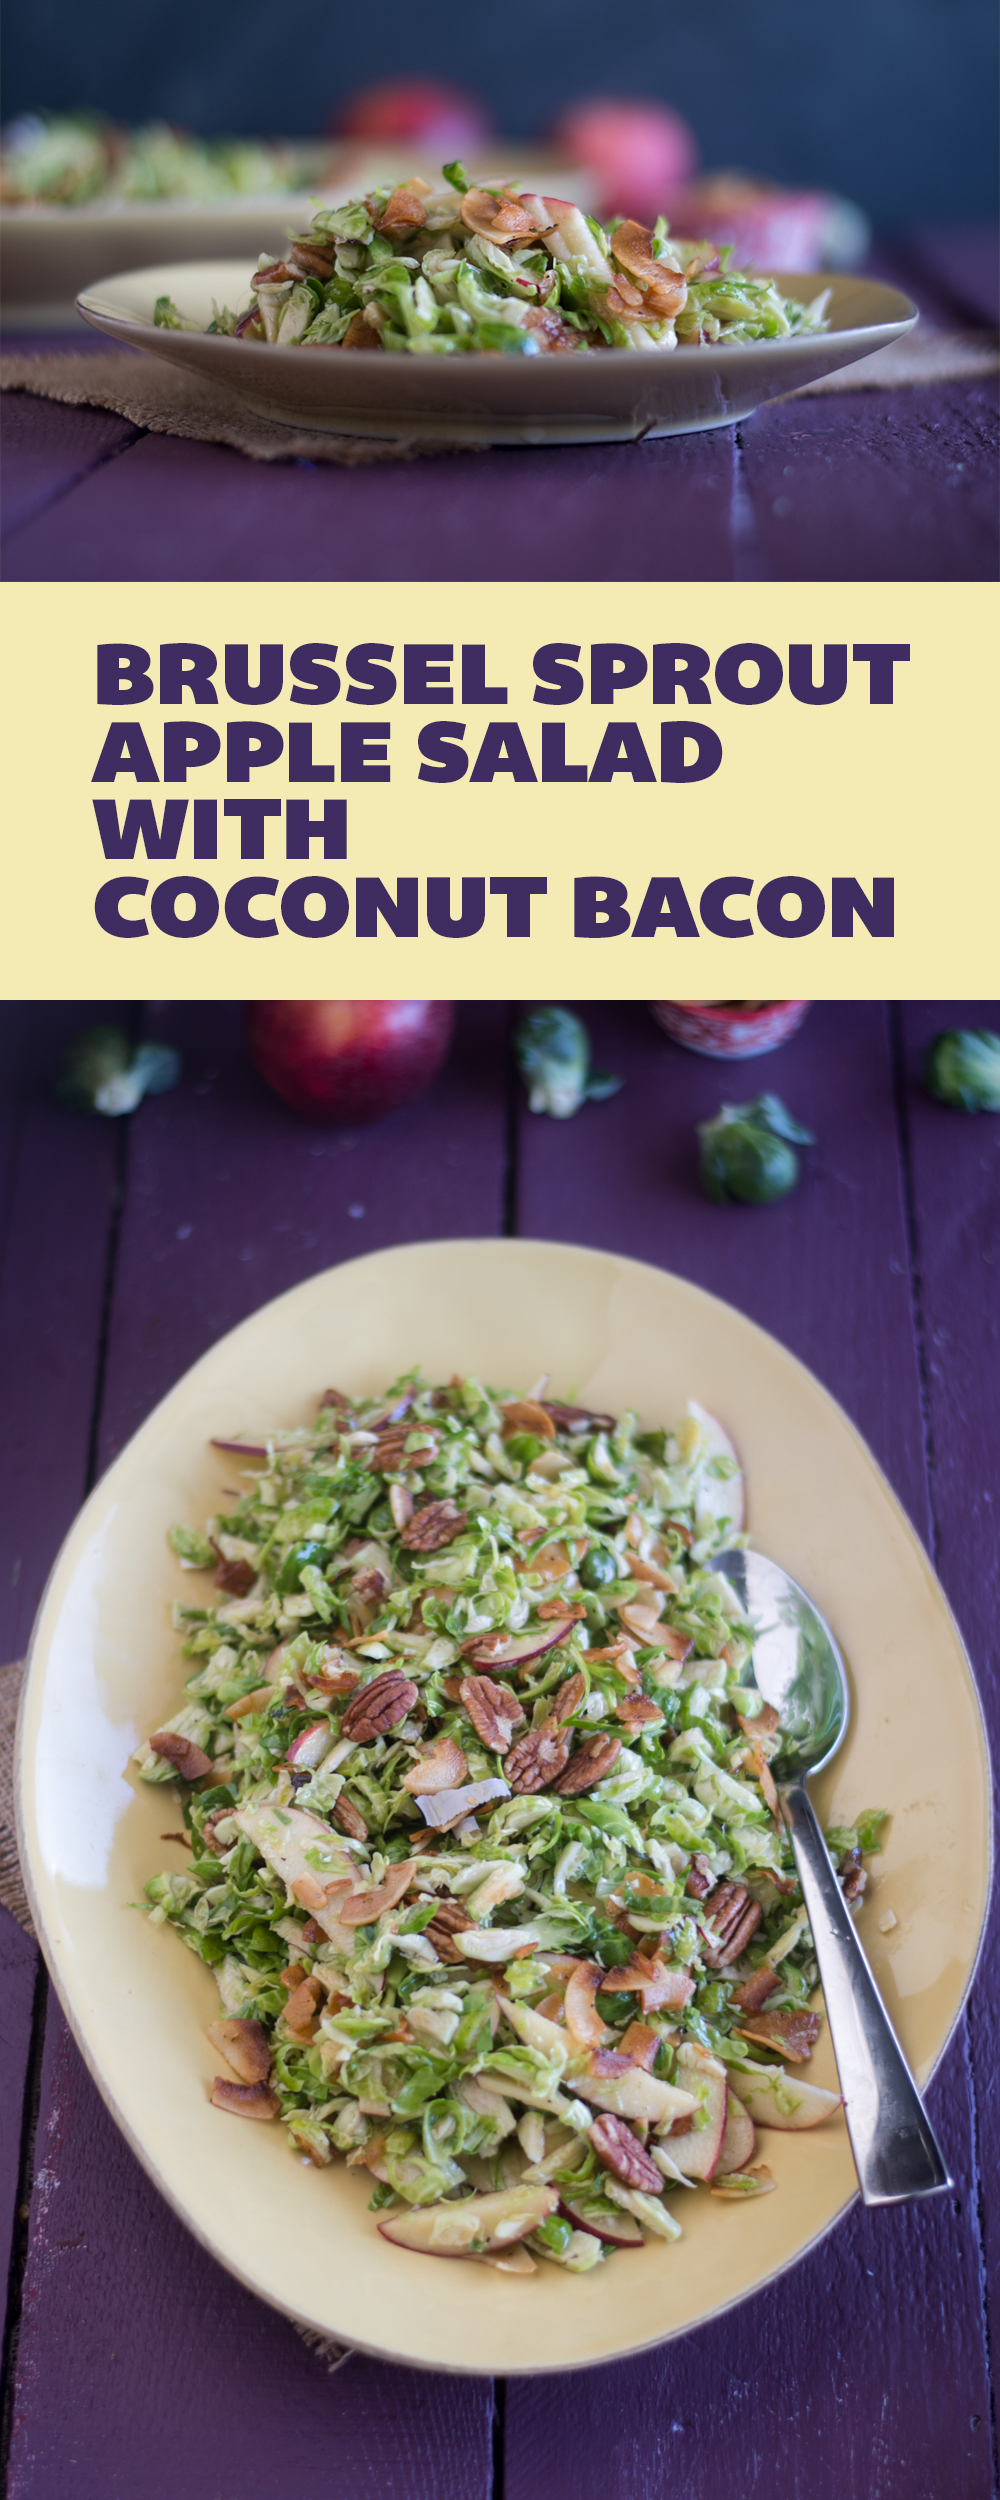 Brussel Sprout Apple Salad with Coconut Bacon is the perfect salad for fall. It's naturally vegan & gluten-free! #vegan #salad #glutenfree #thanksgiving